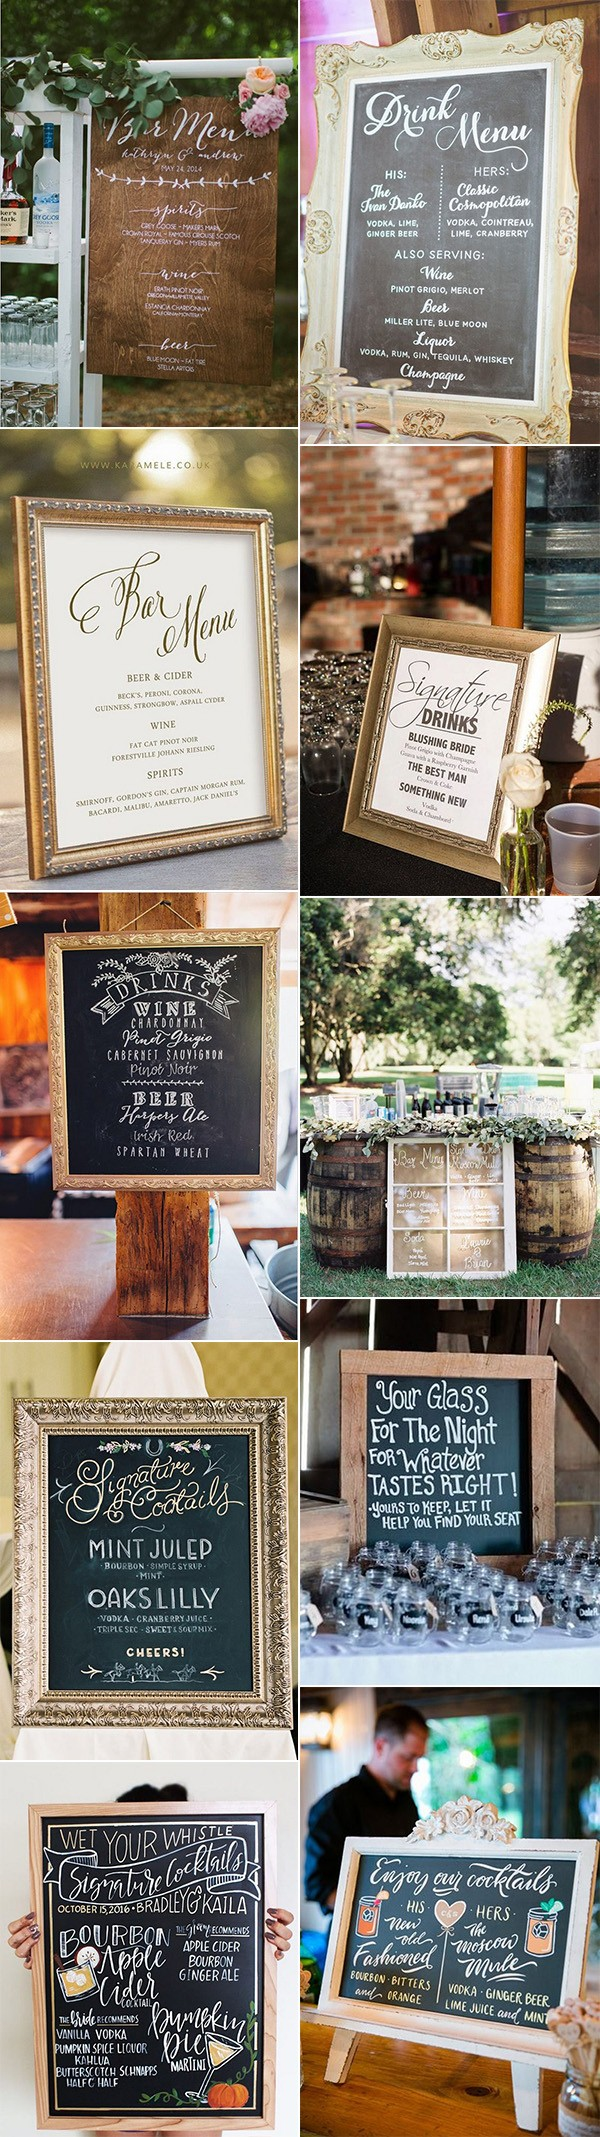 creative wedding drink station signs